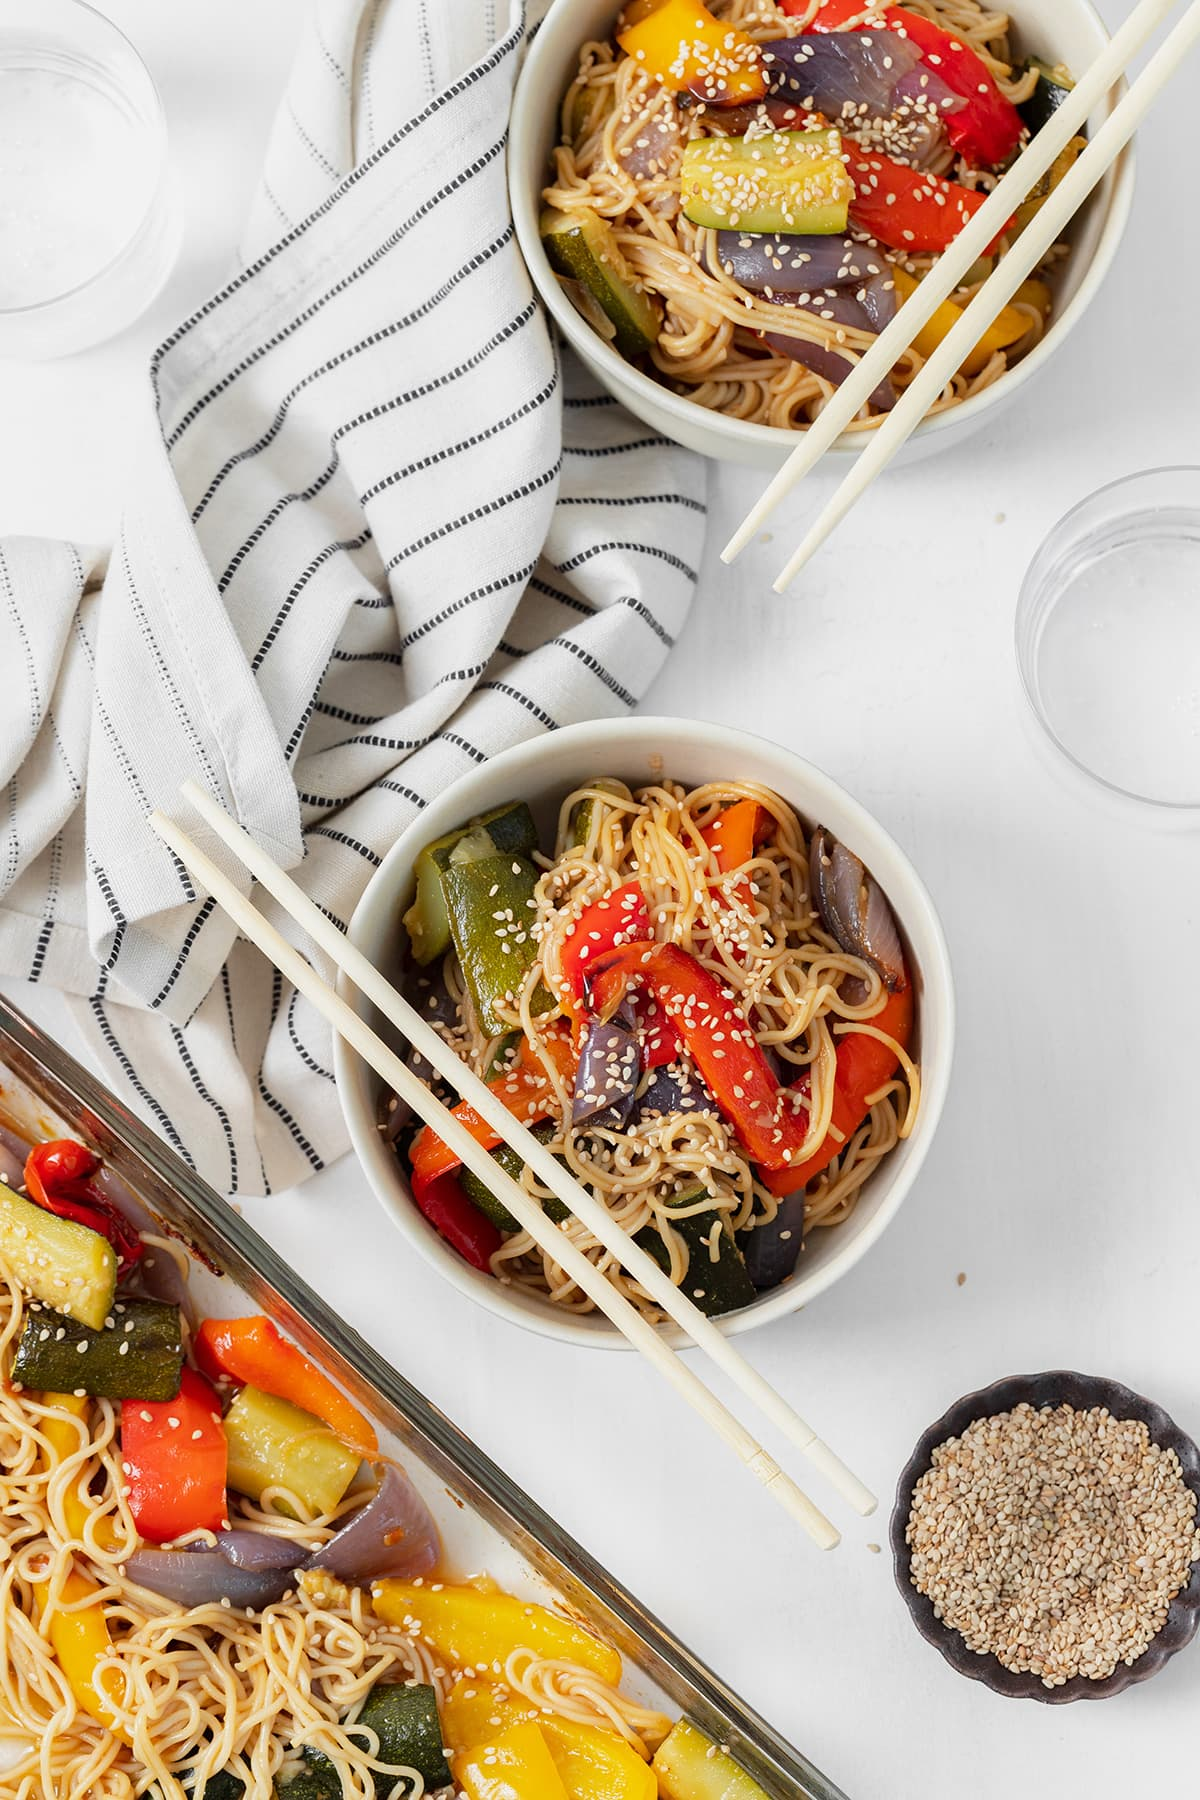 Gluten-free ramen noodle stir fry in two white bowls with chopsticks resting on the left side of the bowls. striped white and black napkin in the top left corner.